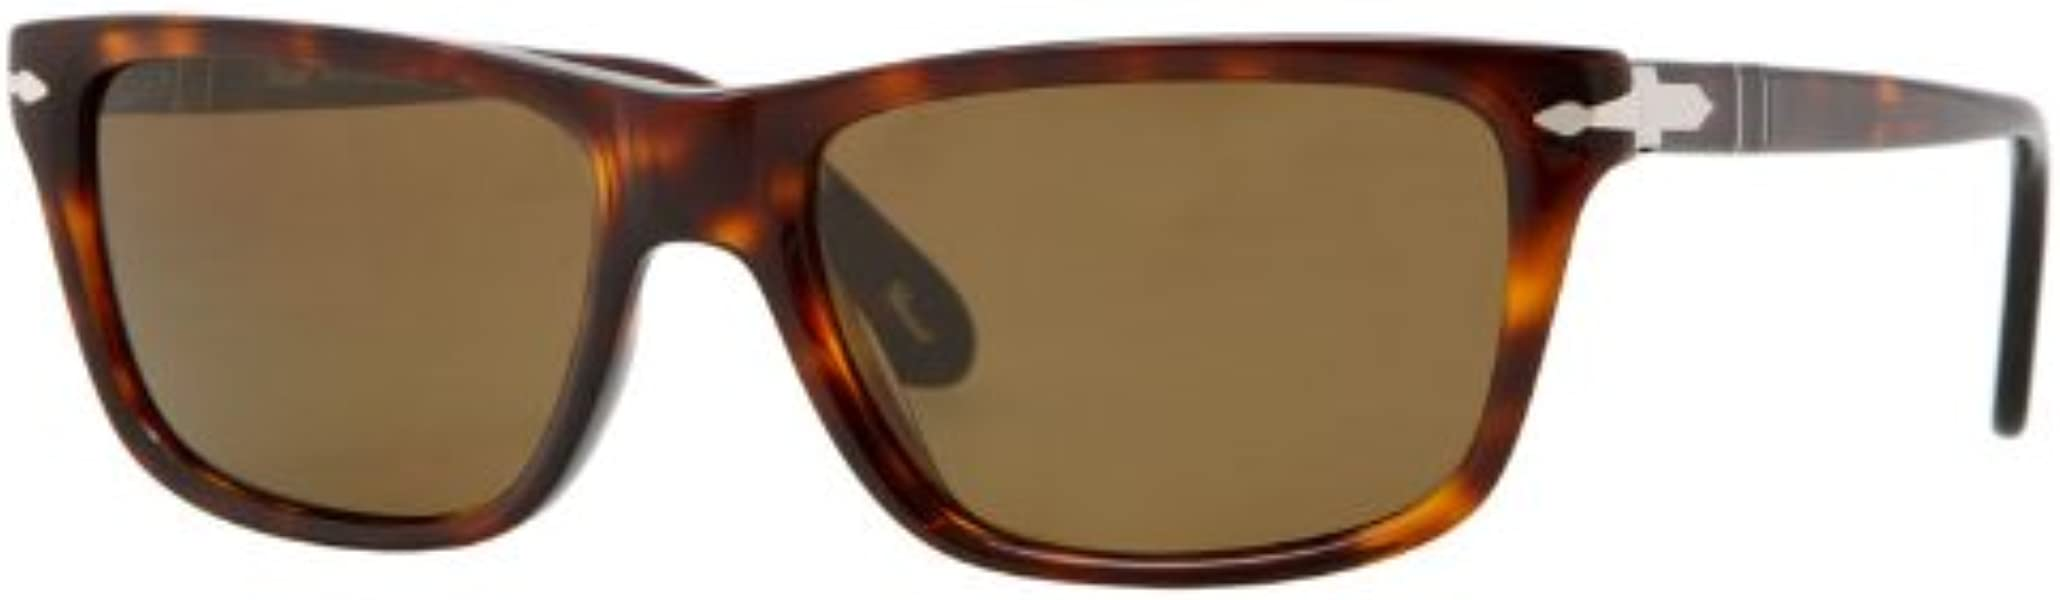 a88f70ce13 Persol Sunglasses PO 3026S 24 57 Havana   Crystal Brown Polarized Frame  Size  55mm